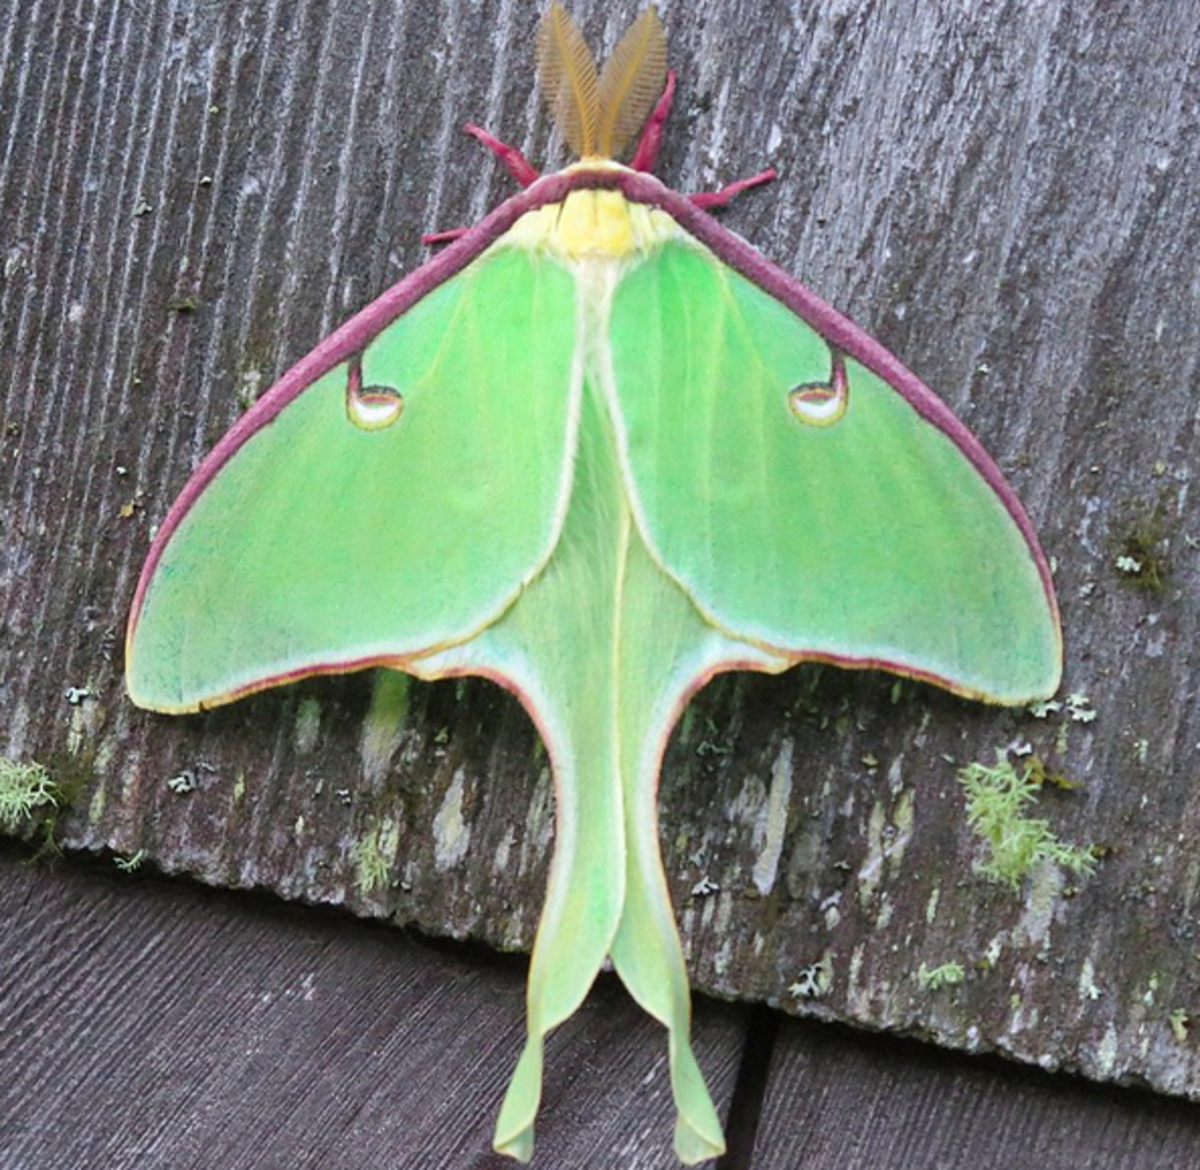 The spectacular luna moth, one of the species featured in this guide